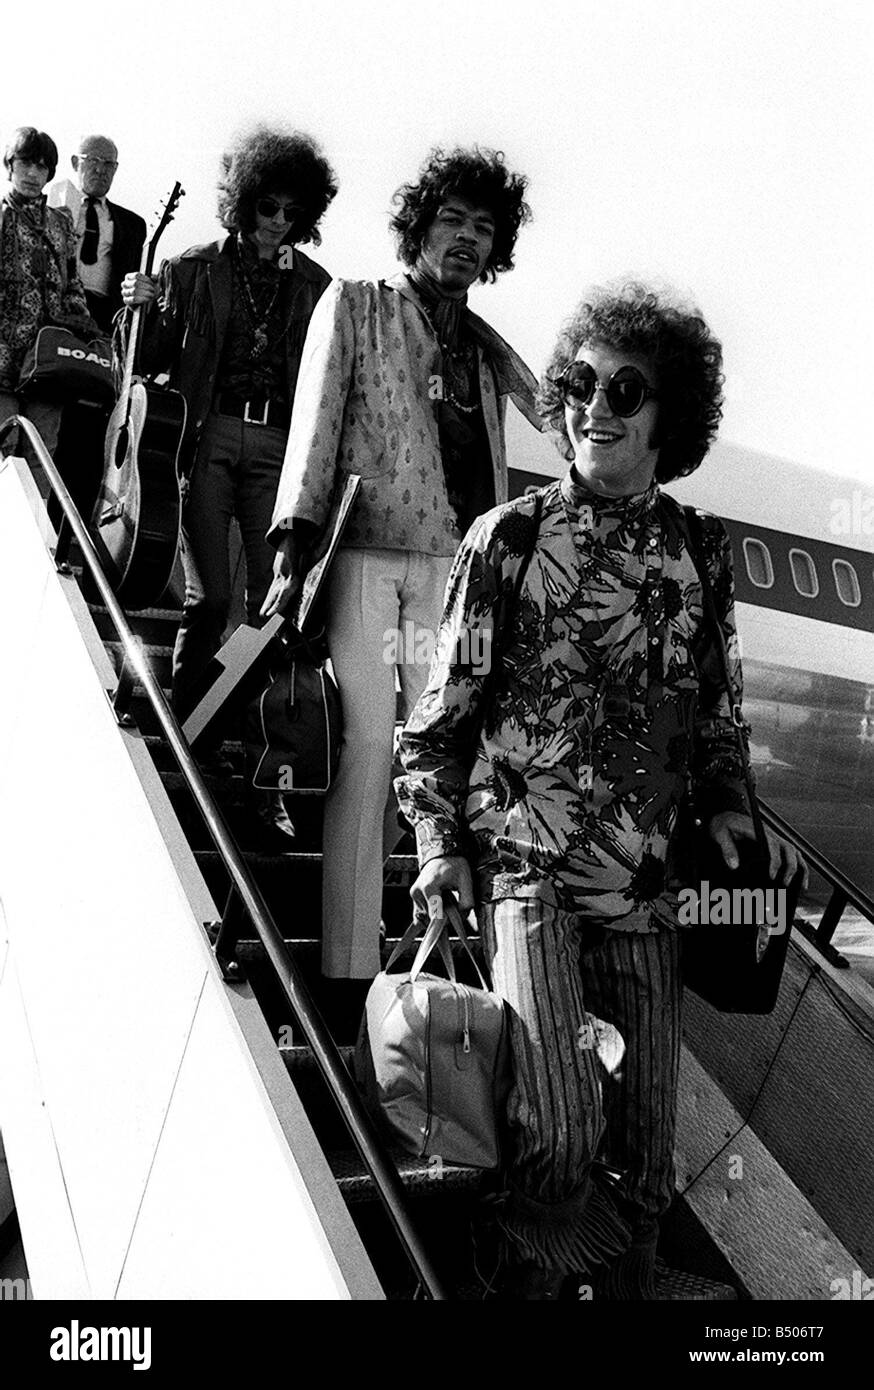 The Jimi Hendrix Experience arriving at LAP August 1967 airplane luggage sunglasses guitar London airport - Stock Image